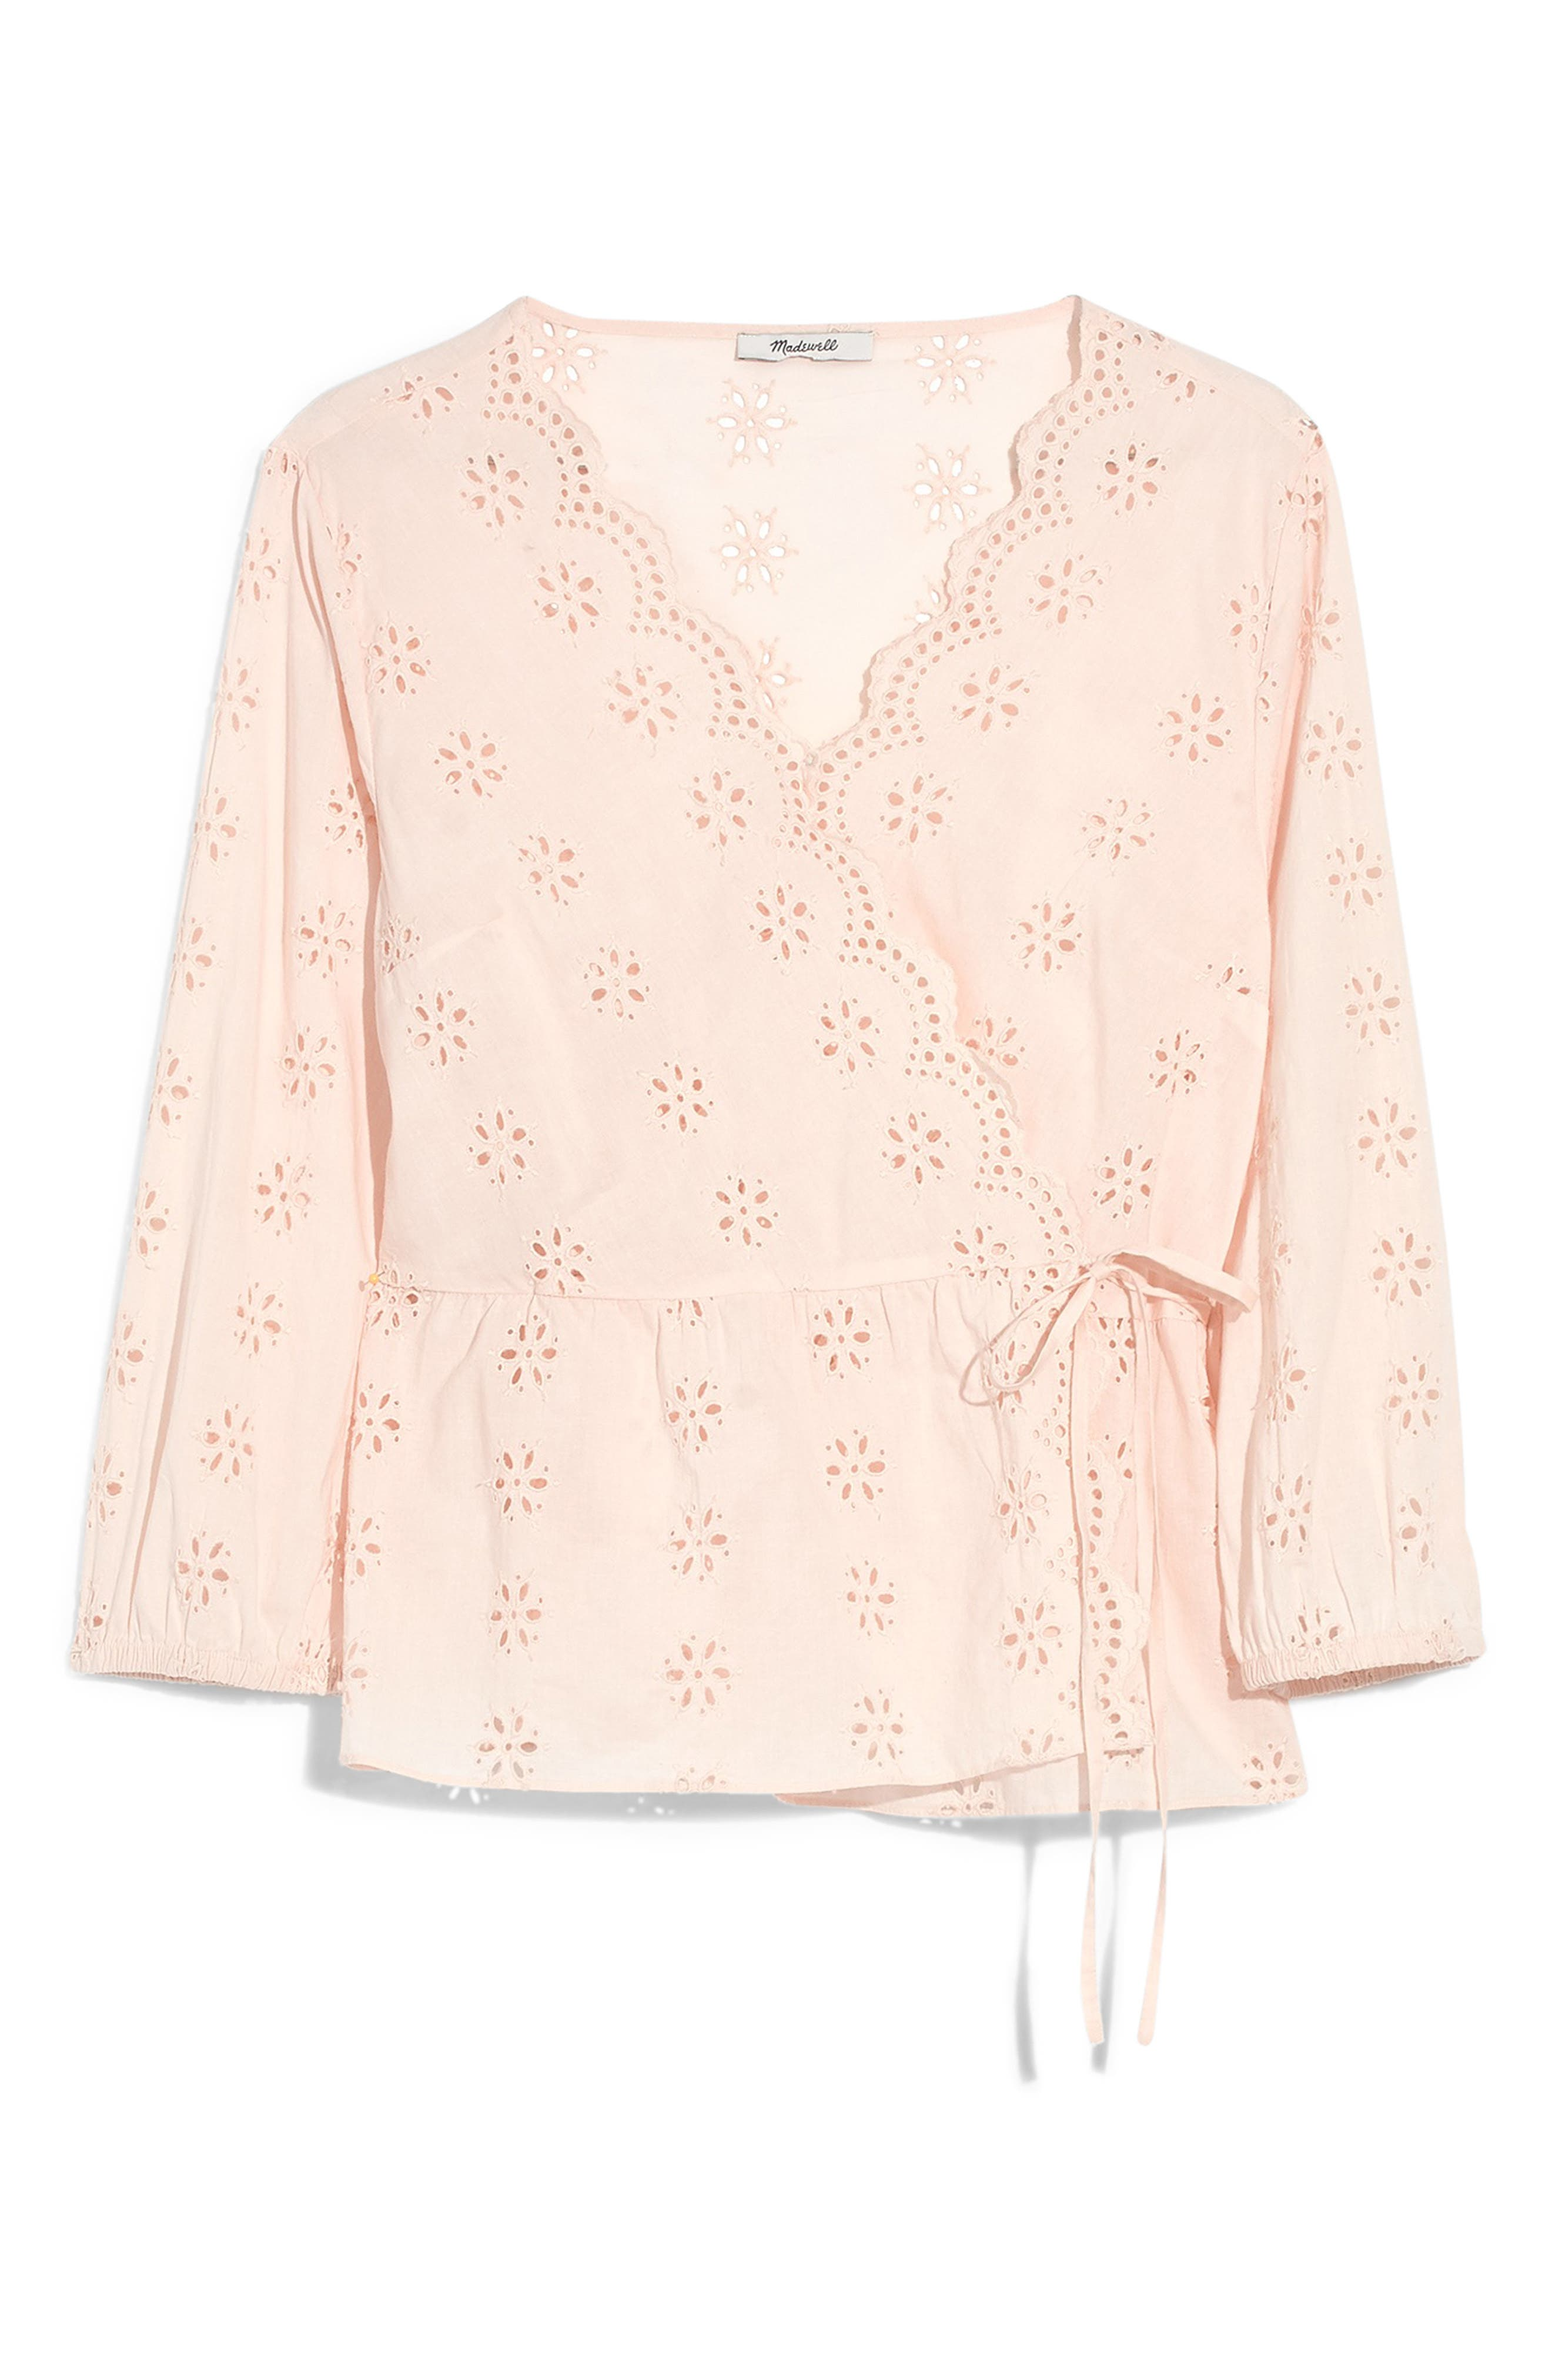 MADEWELL, Scalloped Eyelet Wrap Top, Main thumbnail 1, color, ANTIQUE LACE